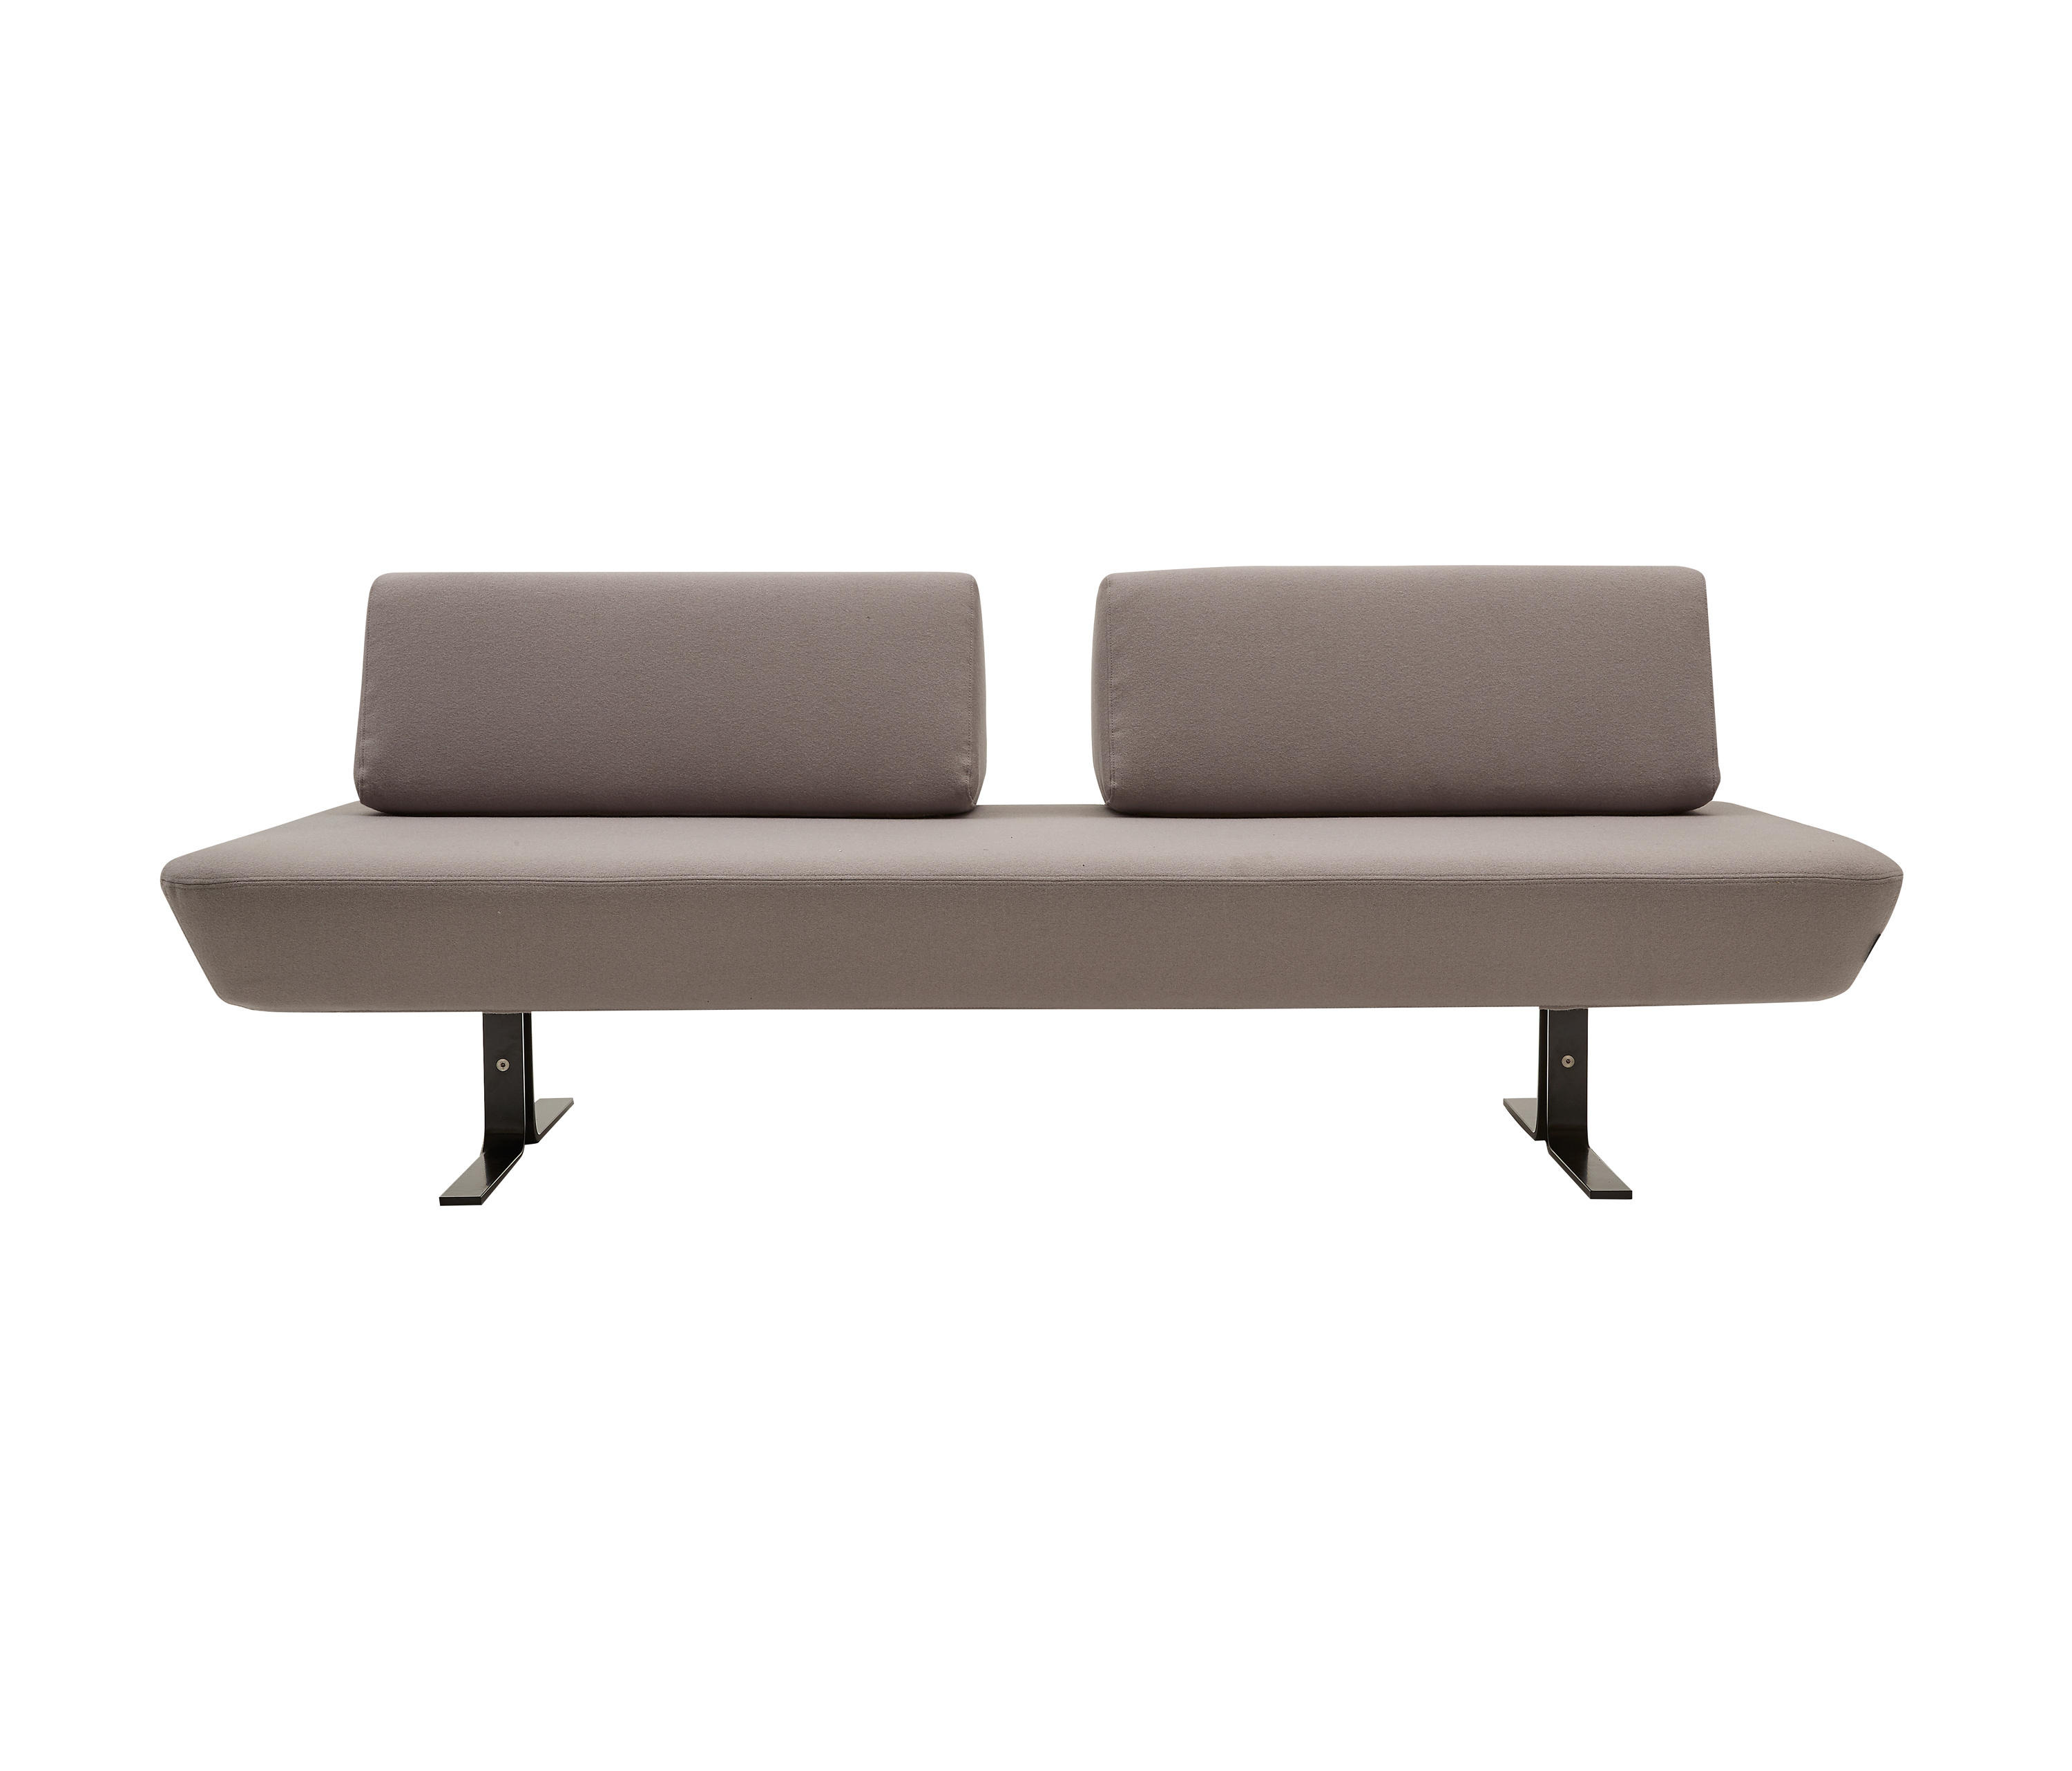 lazy boy sofa furniture village chester tufted upholstered softline review gradschoolfairs